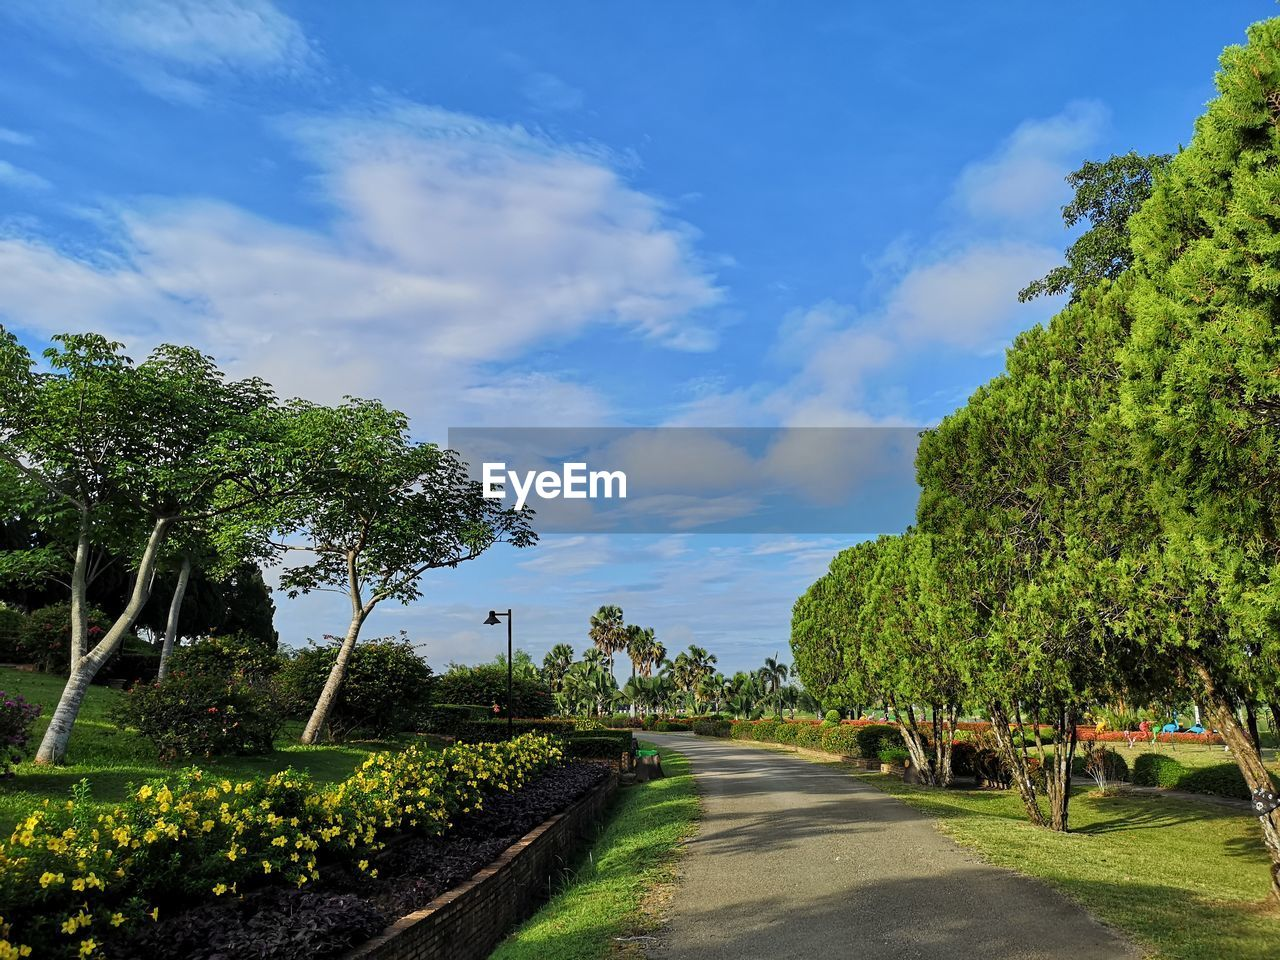 plant, sky, tree, cloud - sky, transportation, growth, nature, road, green color, beauty in nature, the way forward, direction, tranquility, day, tranquil scene, scenics - nature, sunlight, no people, land, outdoors, diminishing perspective, long